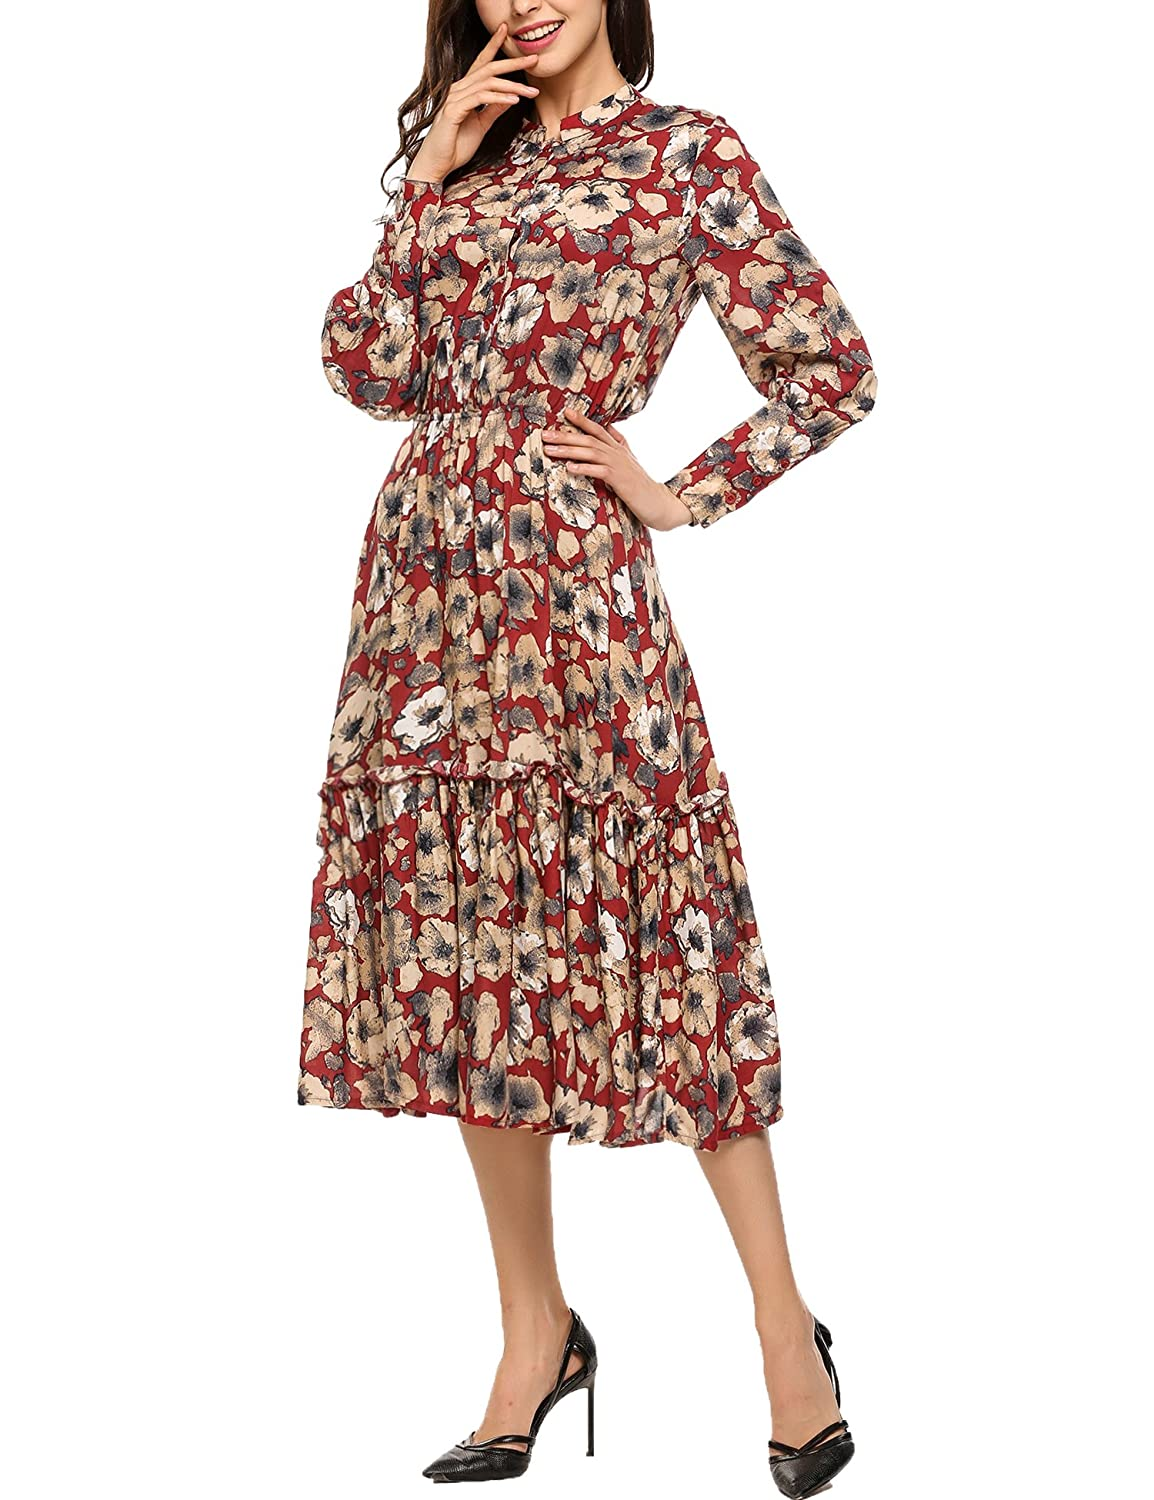 ACEVOG Women's Casual Long Sleeve Floral Print Button Up Flowy Party Maxi Dress